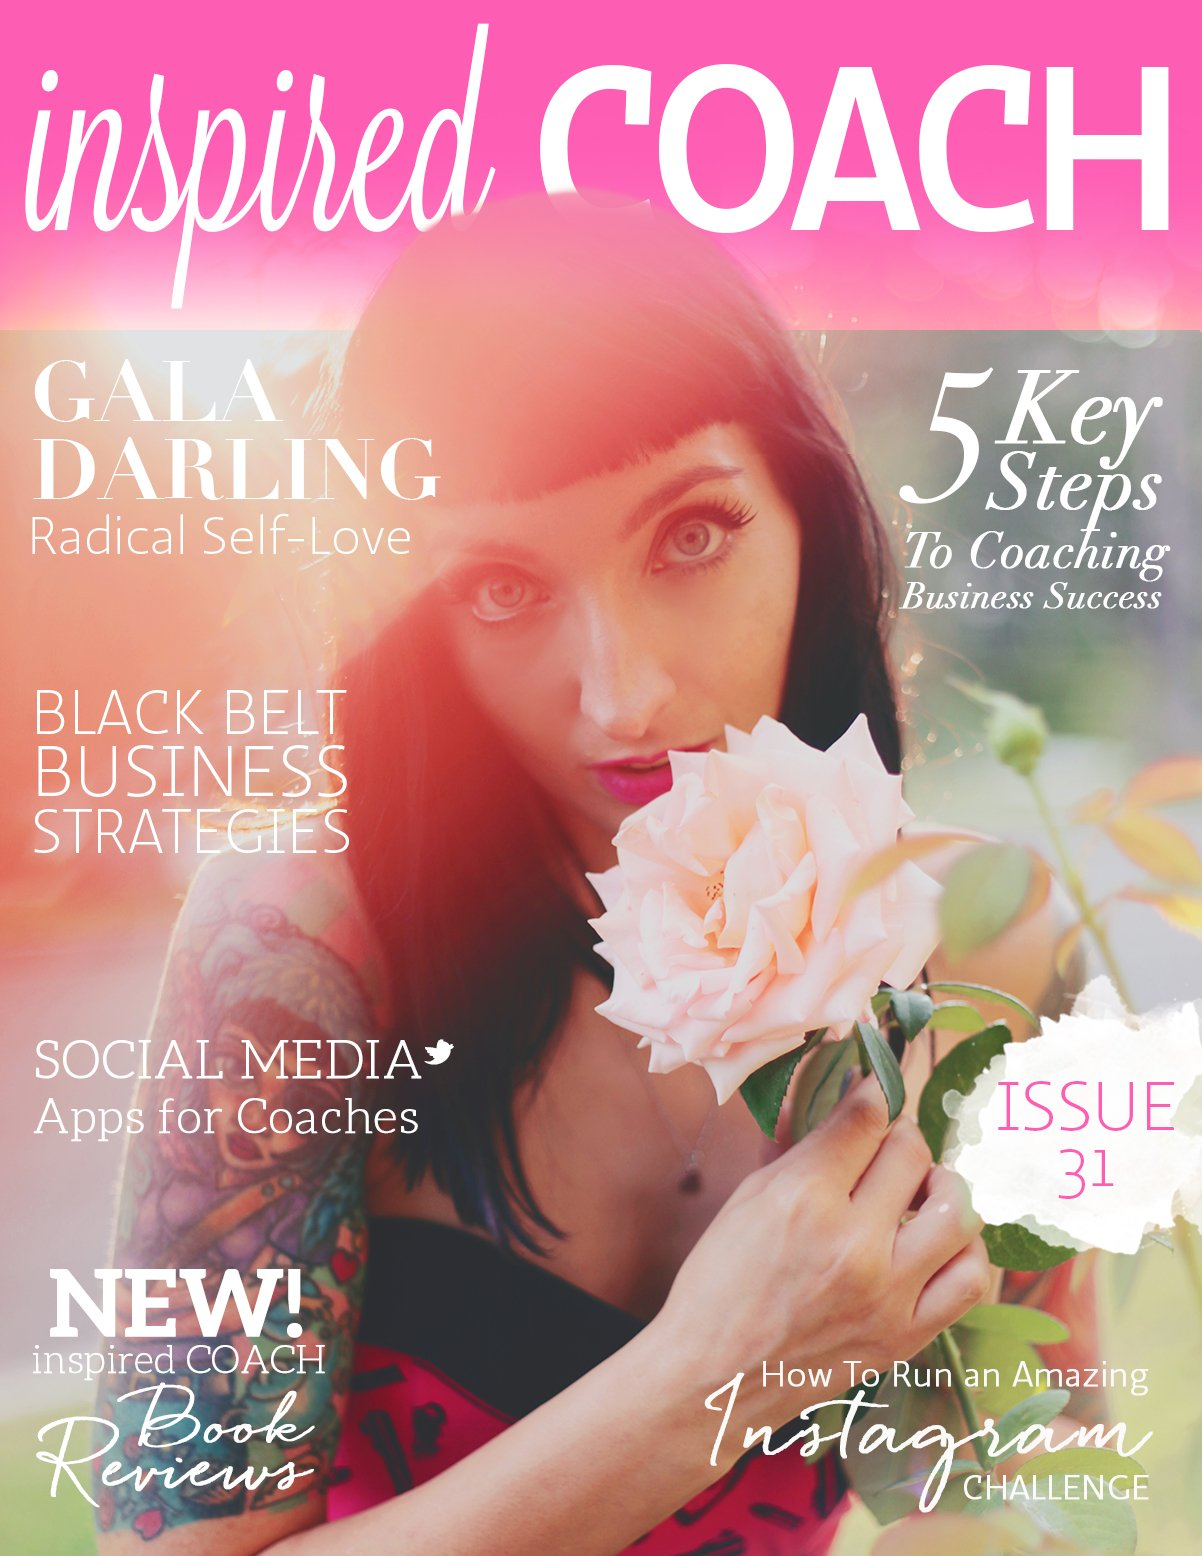 inspired COACH magazine with Gala Darling